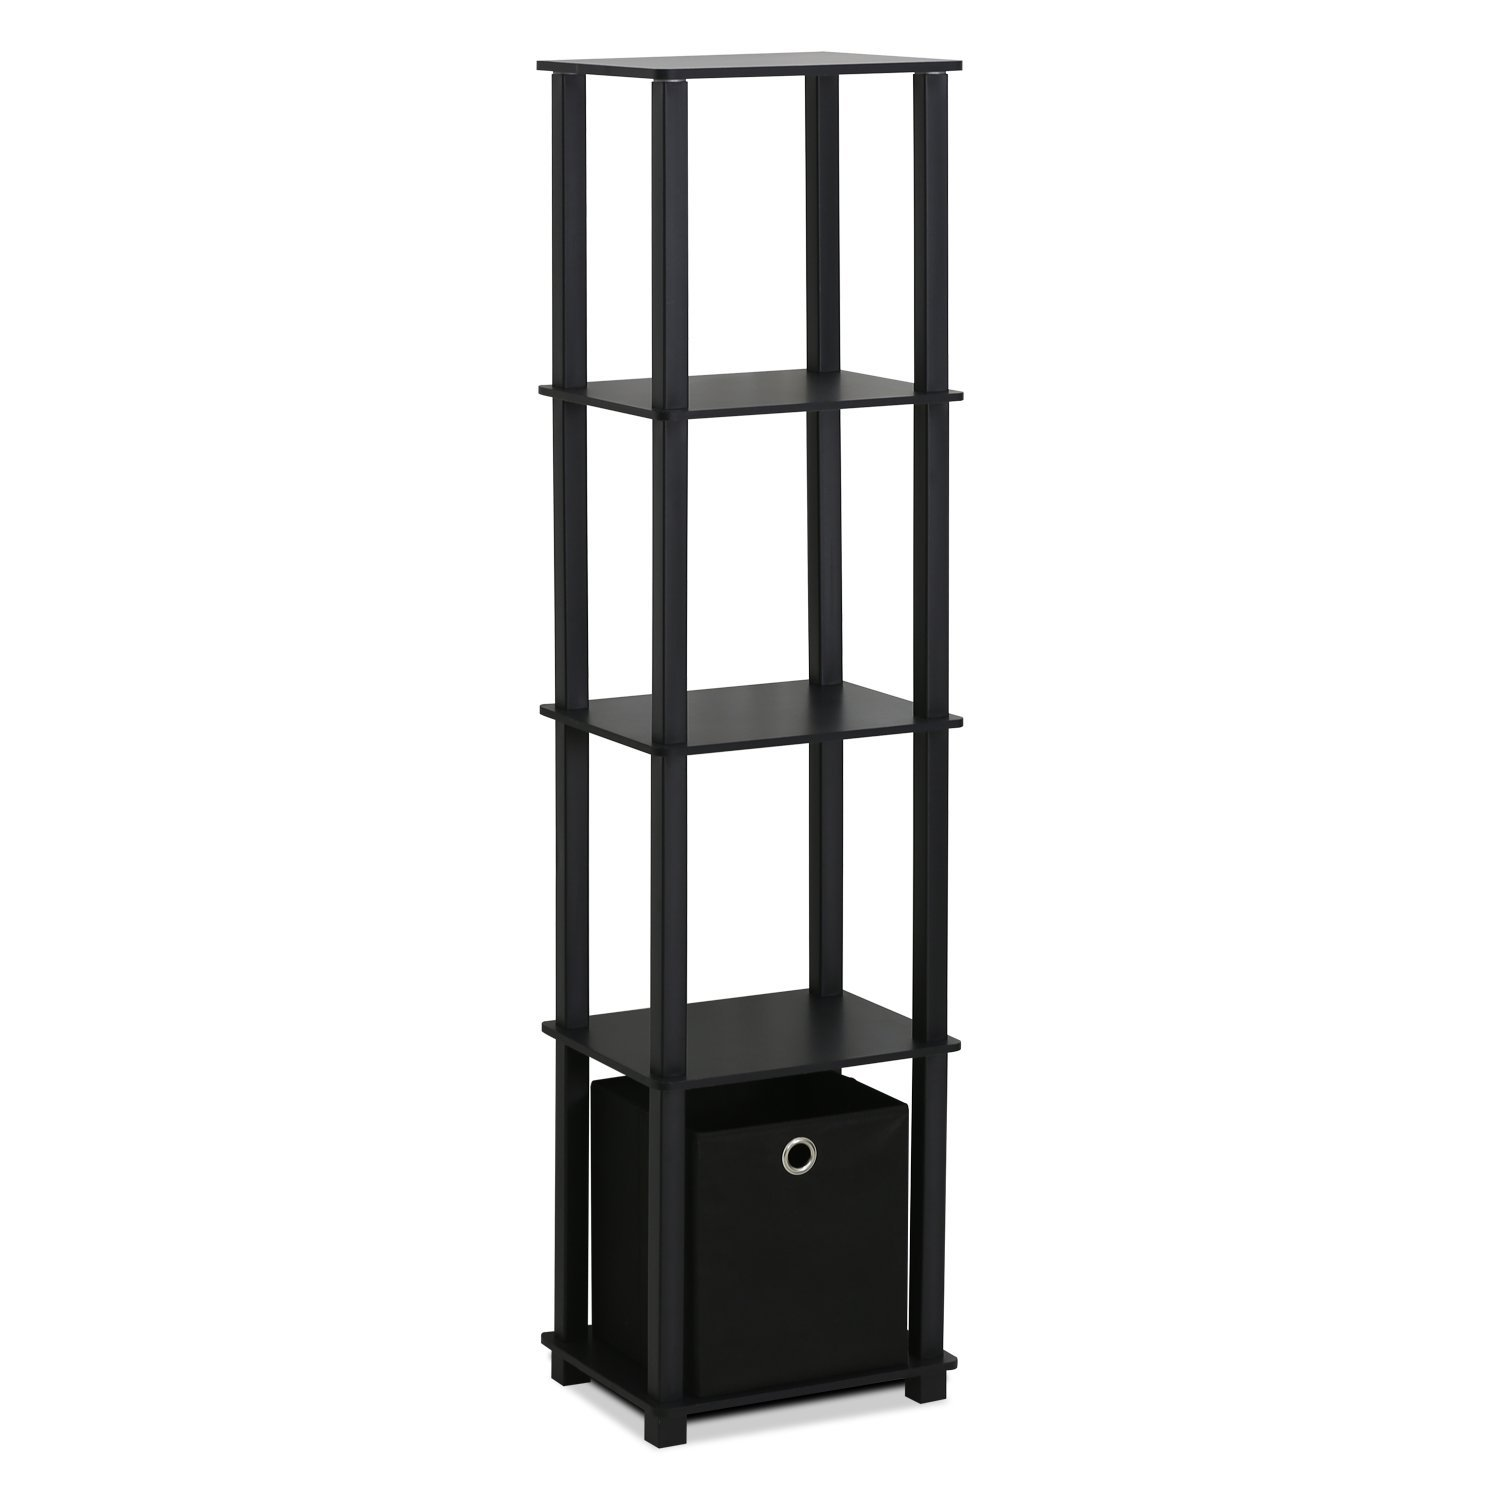 Furinno 15120BKBK Decorative Shelf with Bin Black